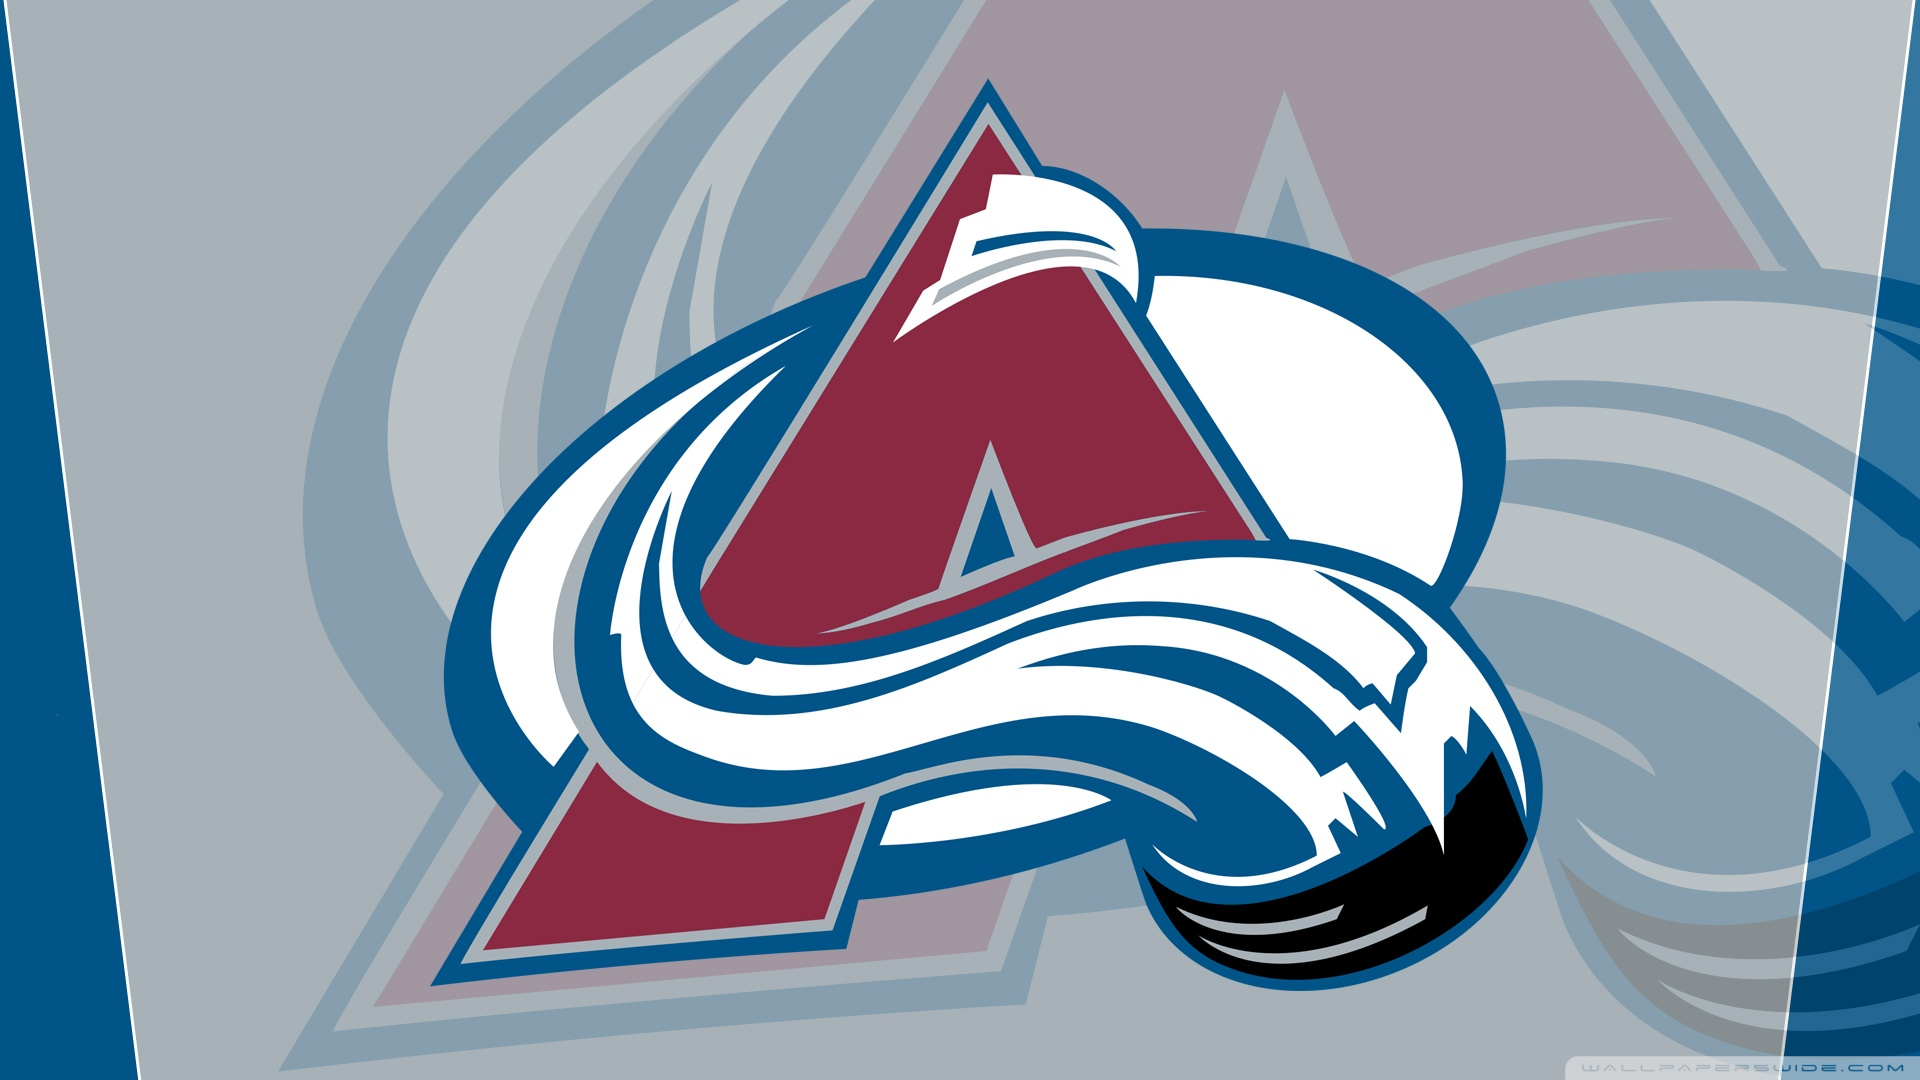 1920x1080 - Colorado Avalanche Wallpapers 14